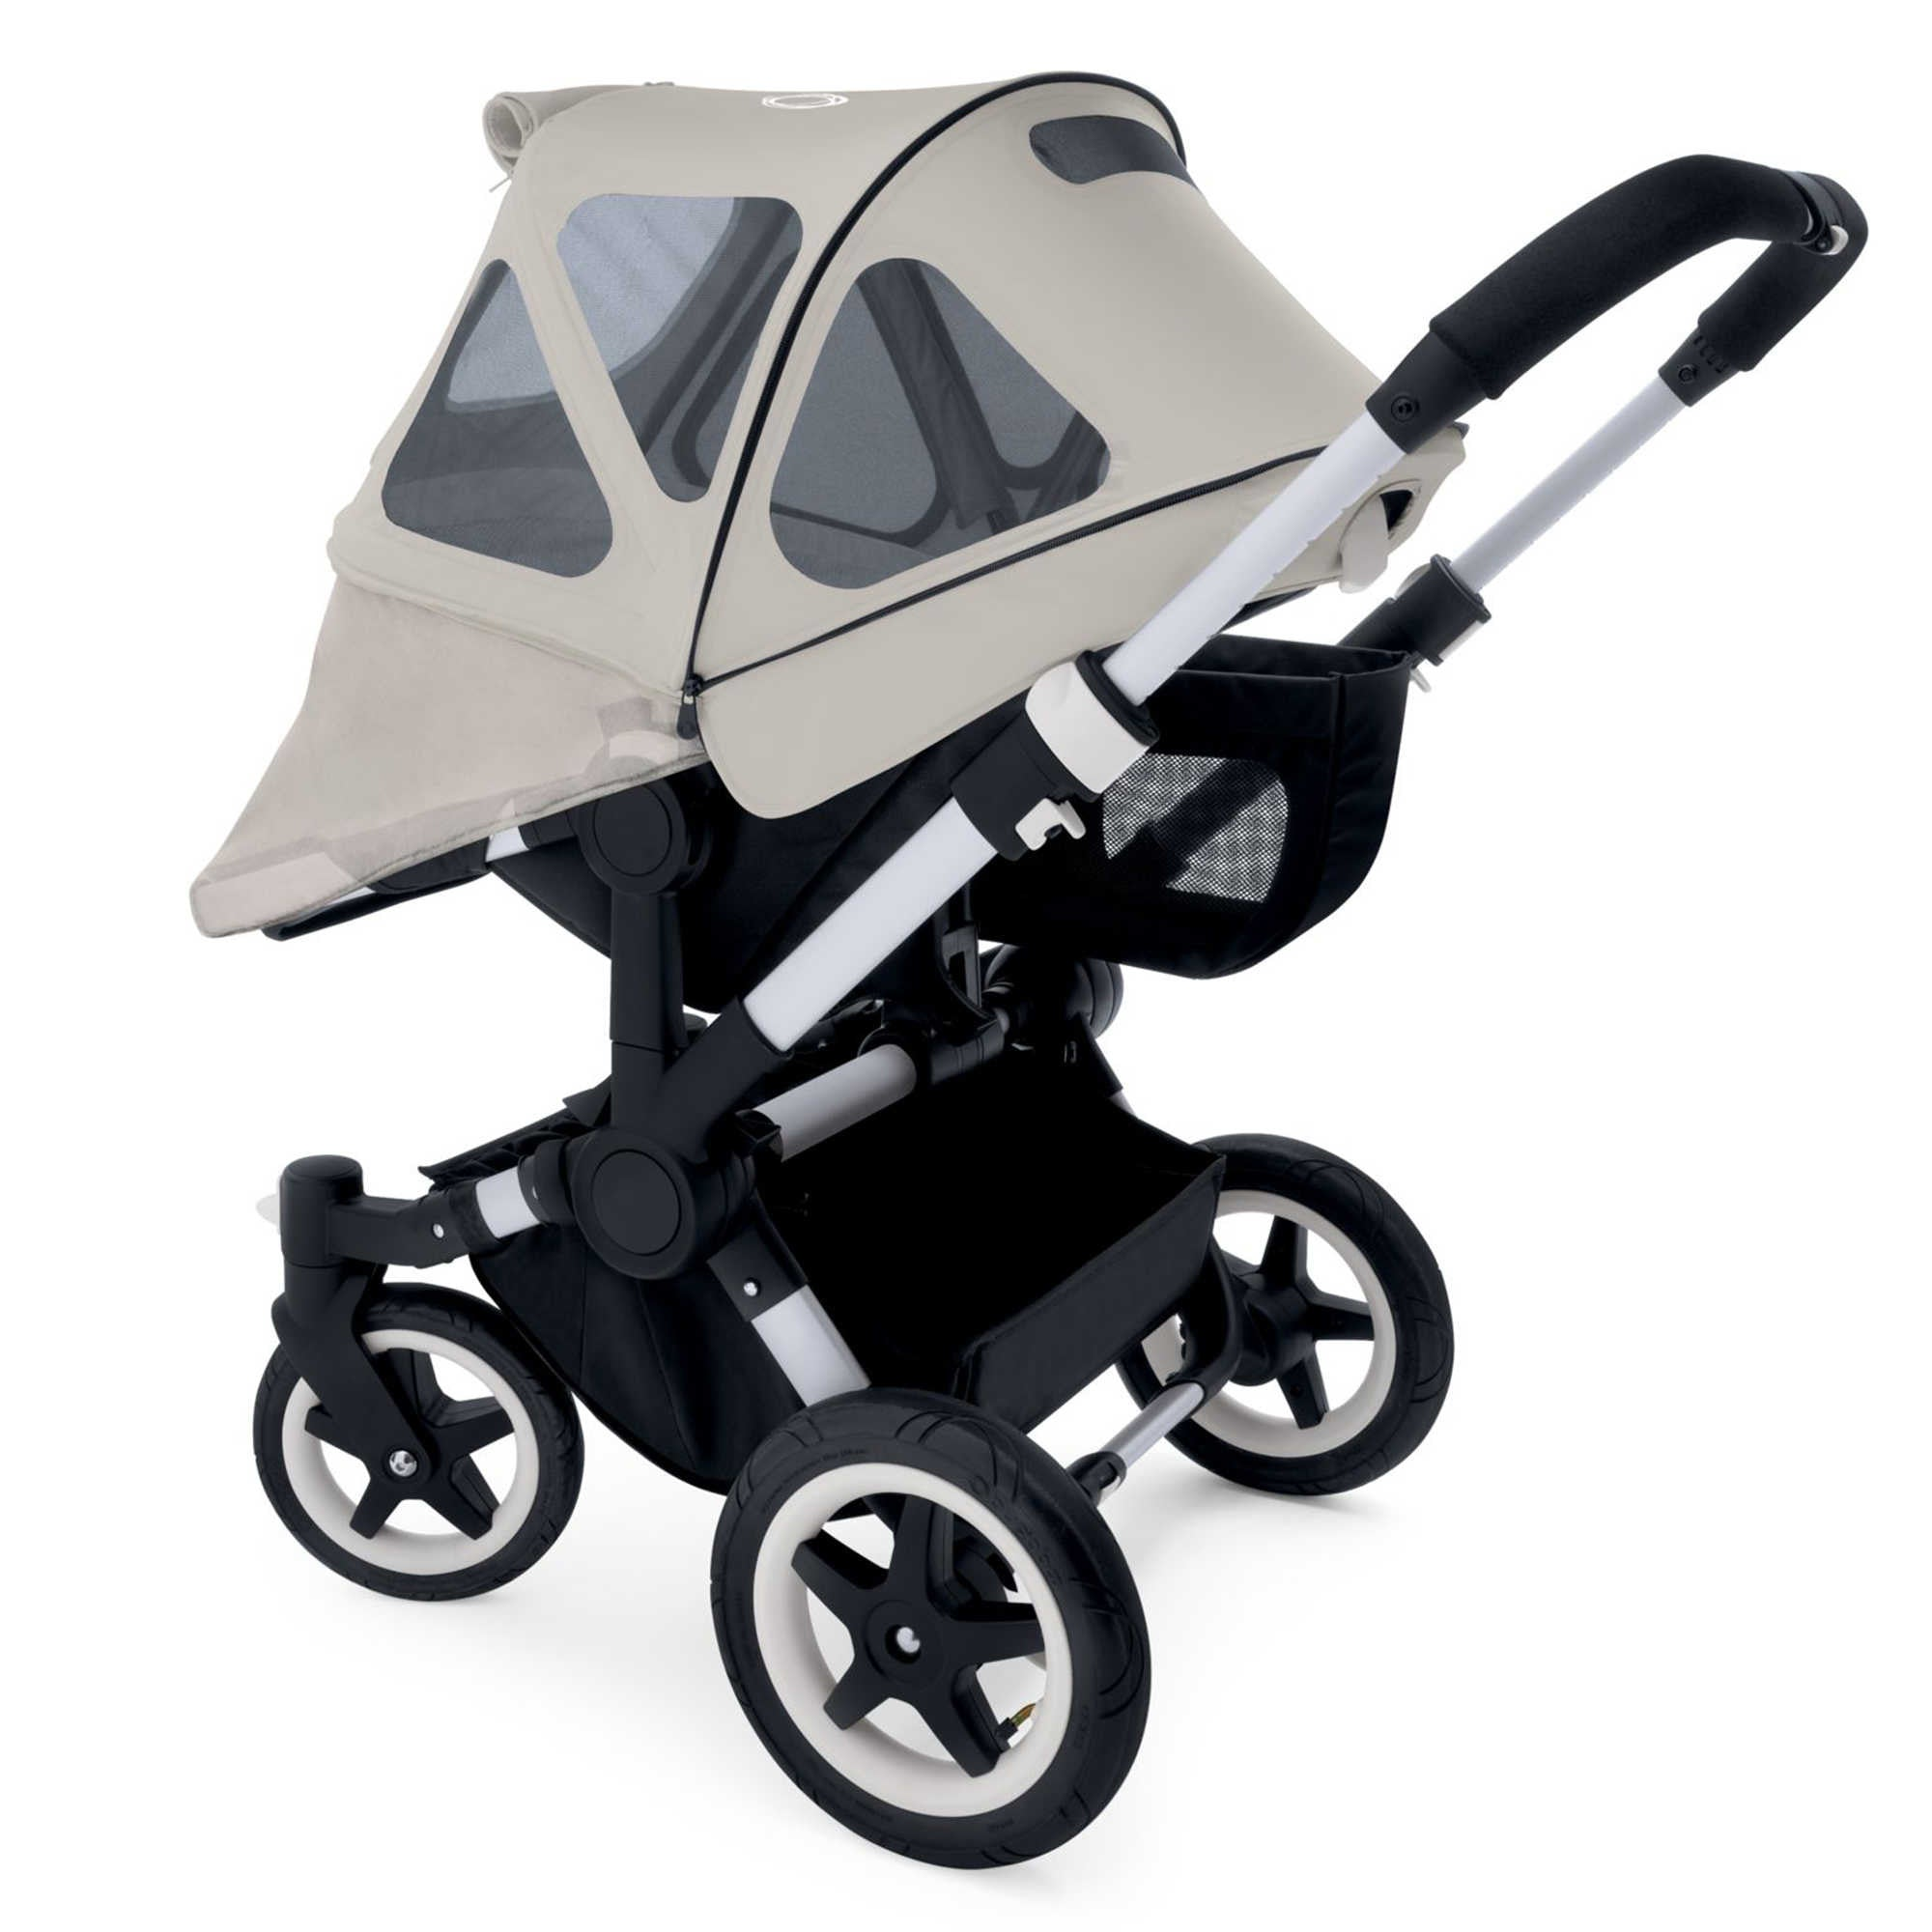 Bugaboo Donkey Breezy Sun Canopy  sc 1 st  Little Folks NYC & Bugaboo Donkey Breezy Sun Canopy - Little Folks NYC